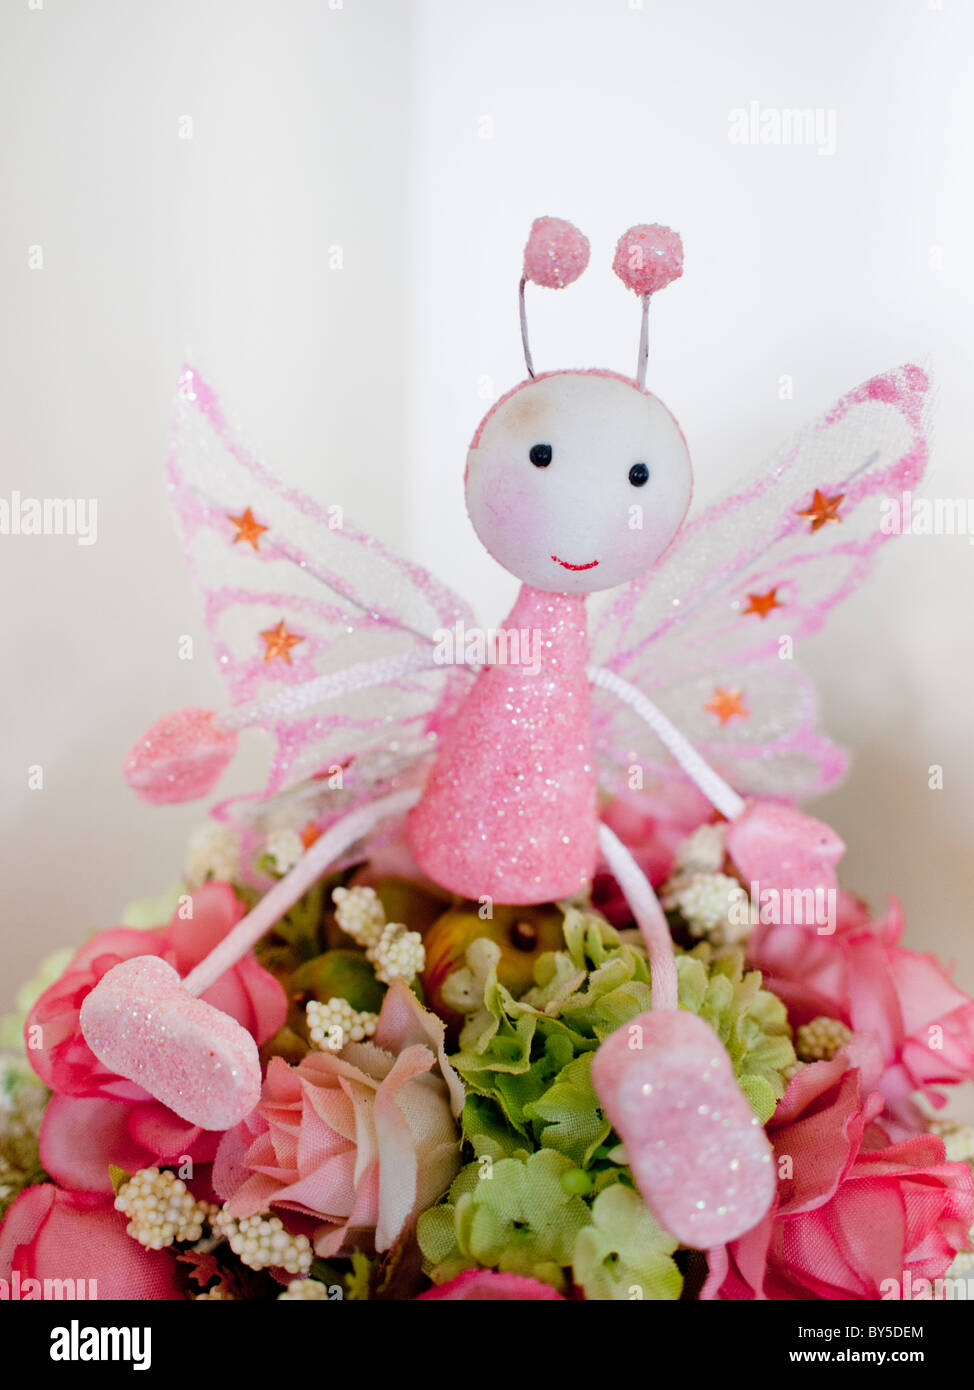 Fairy wings pink flower stock photos fairy wings pink flower stock a flower fairy angle in pink with wide wings stock image mightylinksfo